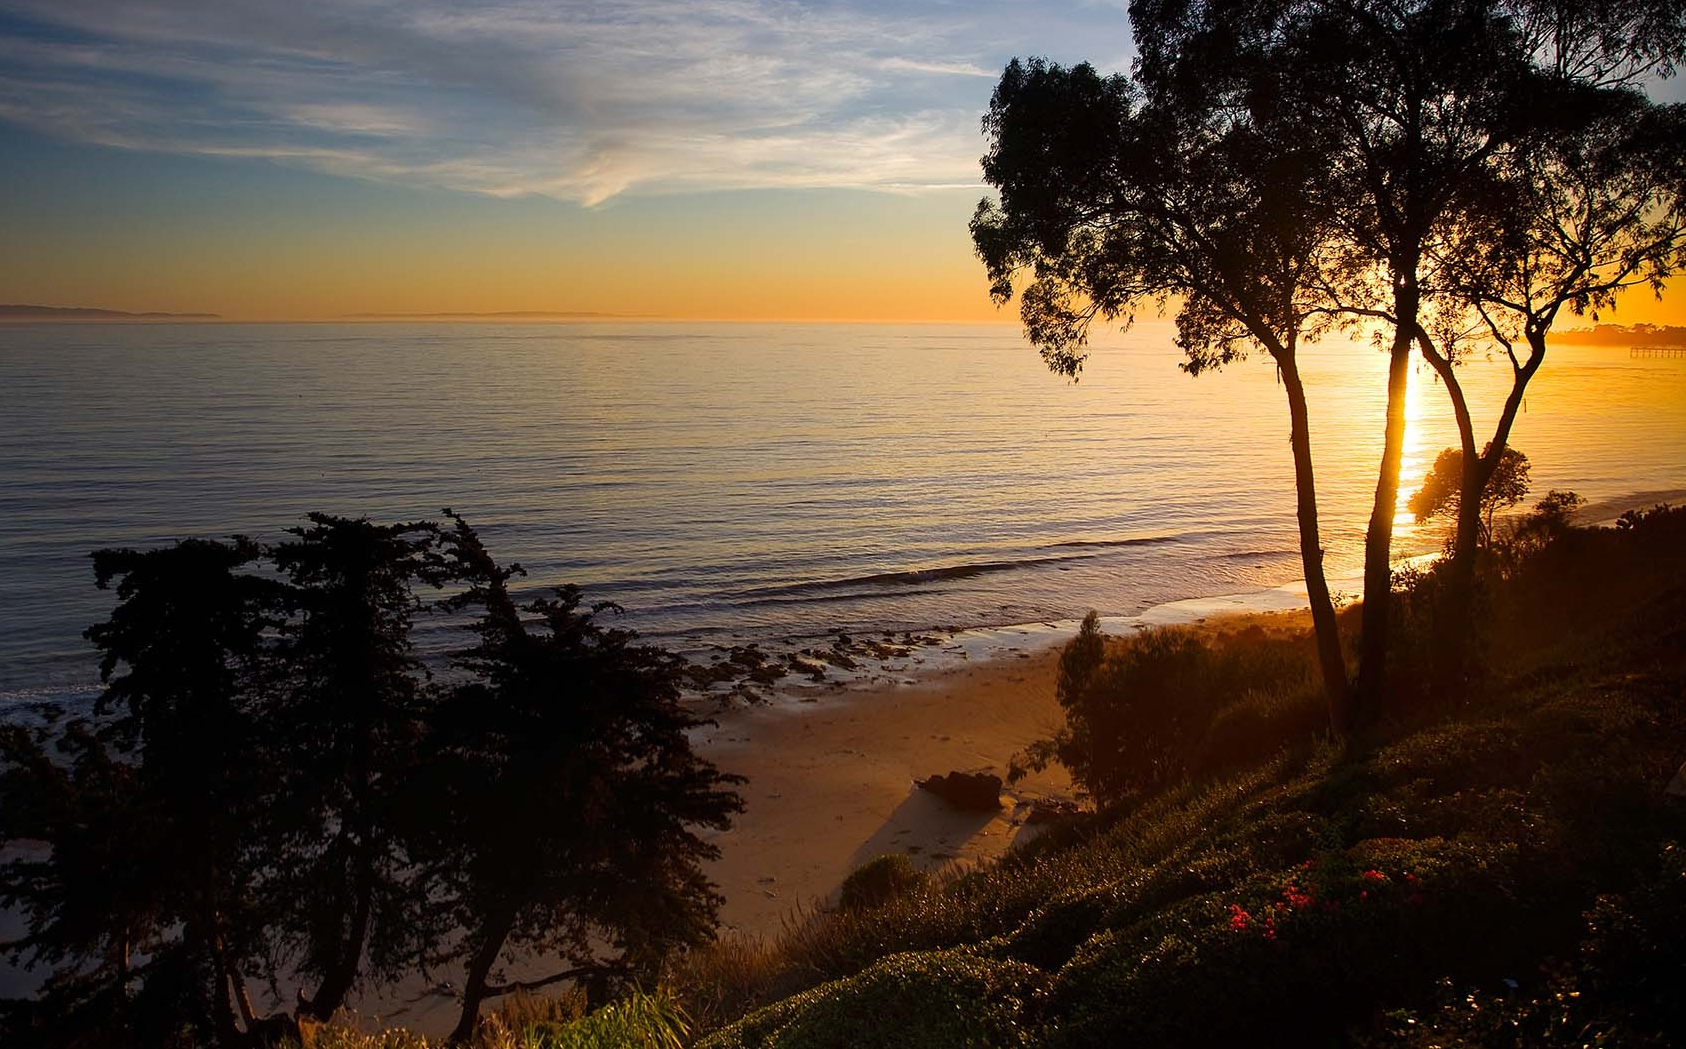 Sunset-from-Hope-Ranch-oceanfront-home-in-Santa-Barbara-CA.jpg